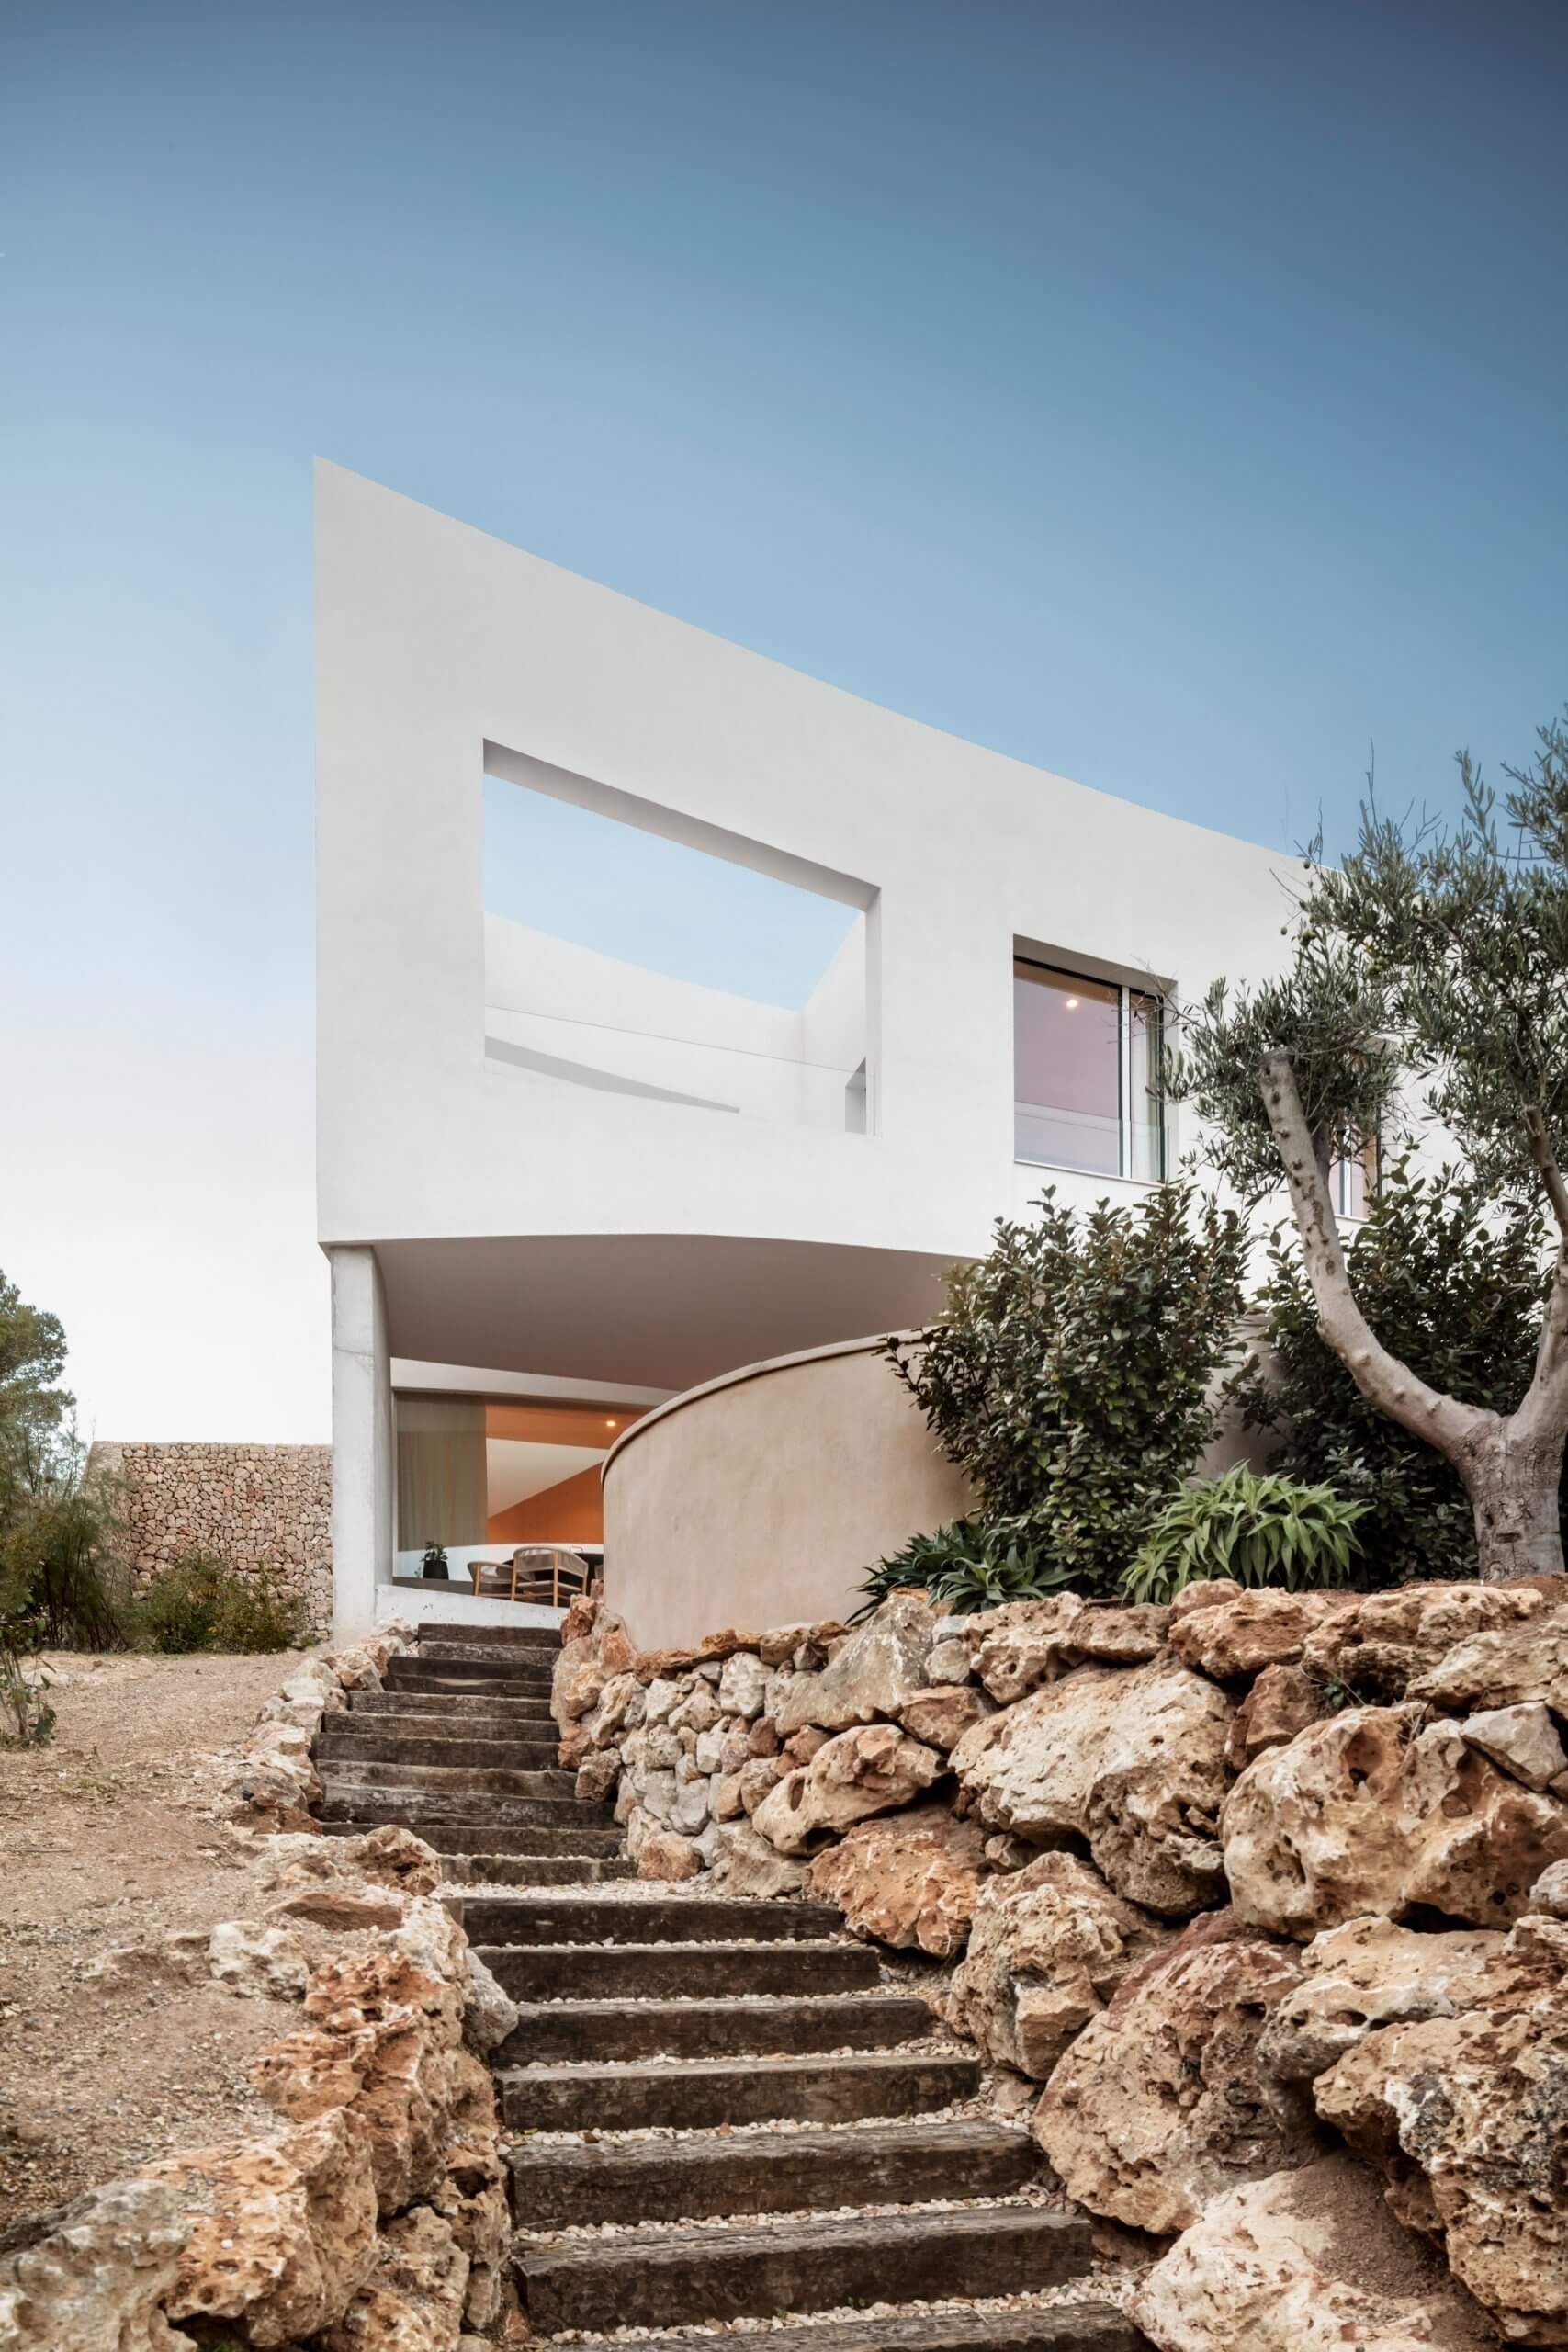 nomo studio curved house menorca spain architecture residential dezeen 2364 col 22 scaled 1